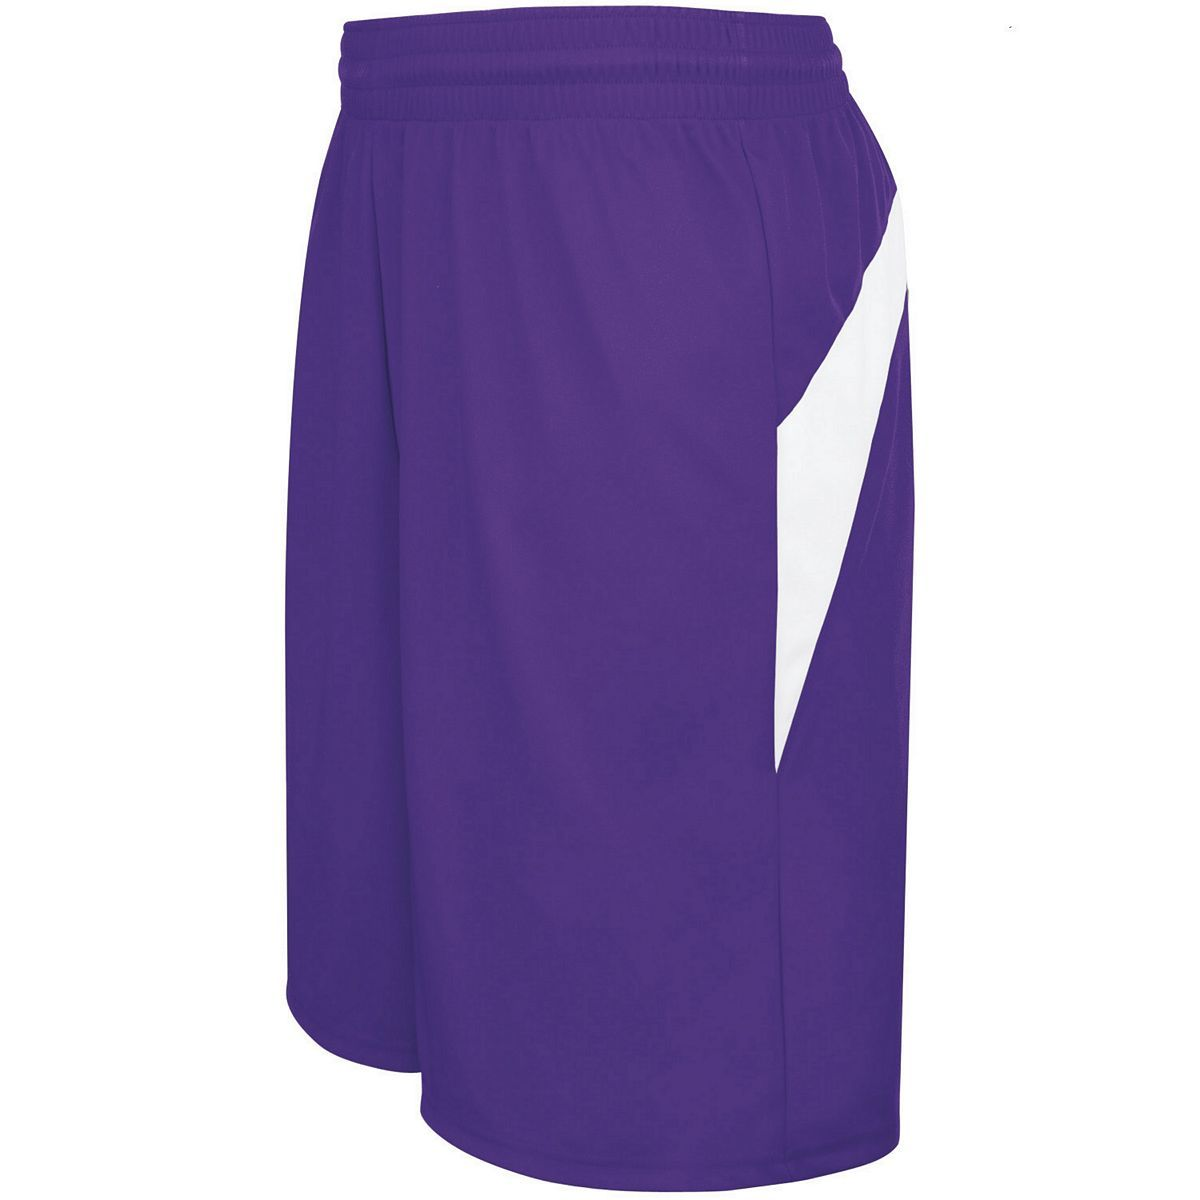 Adult Transition Game Shorts - PURPLE/WHITE